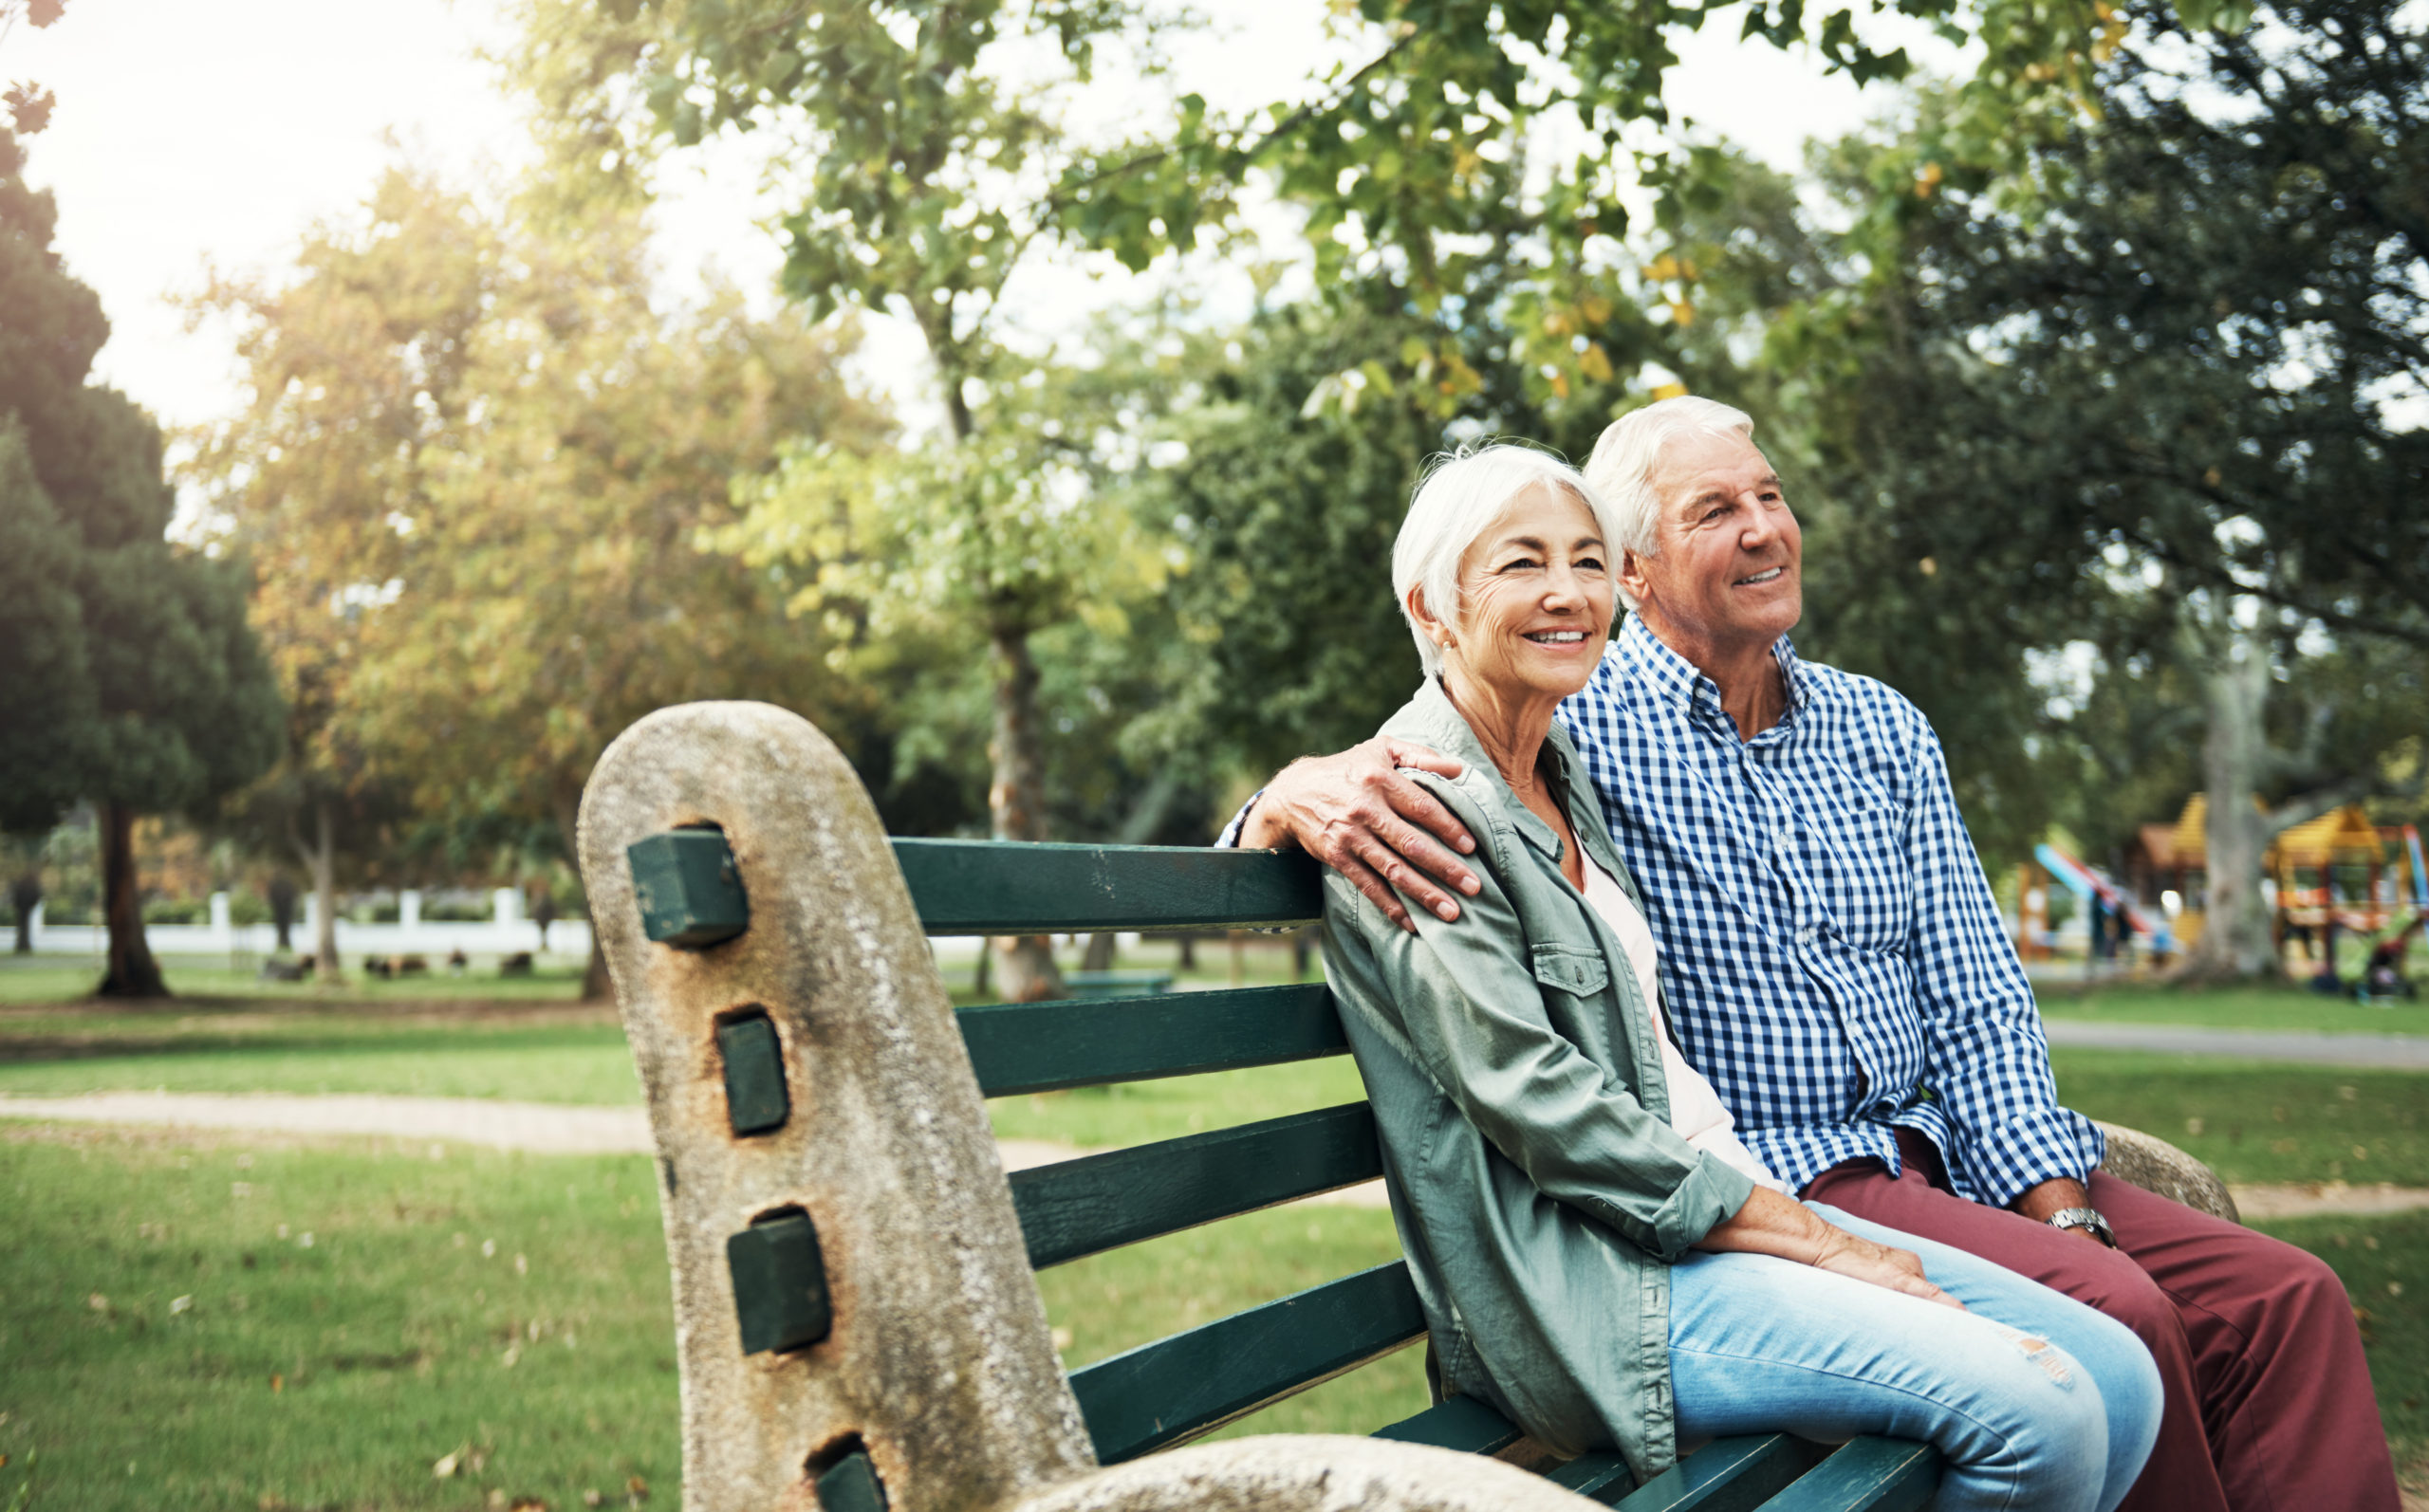 alavida lifestyles refer a resident -people sitting on a bench